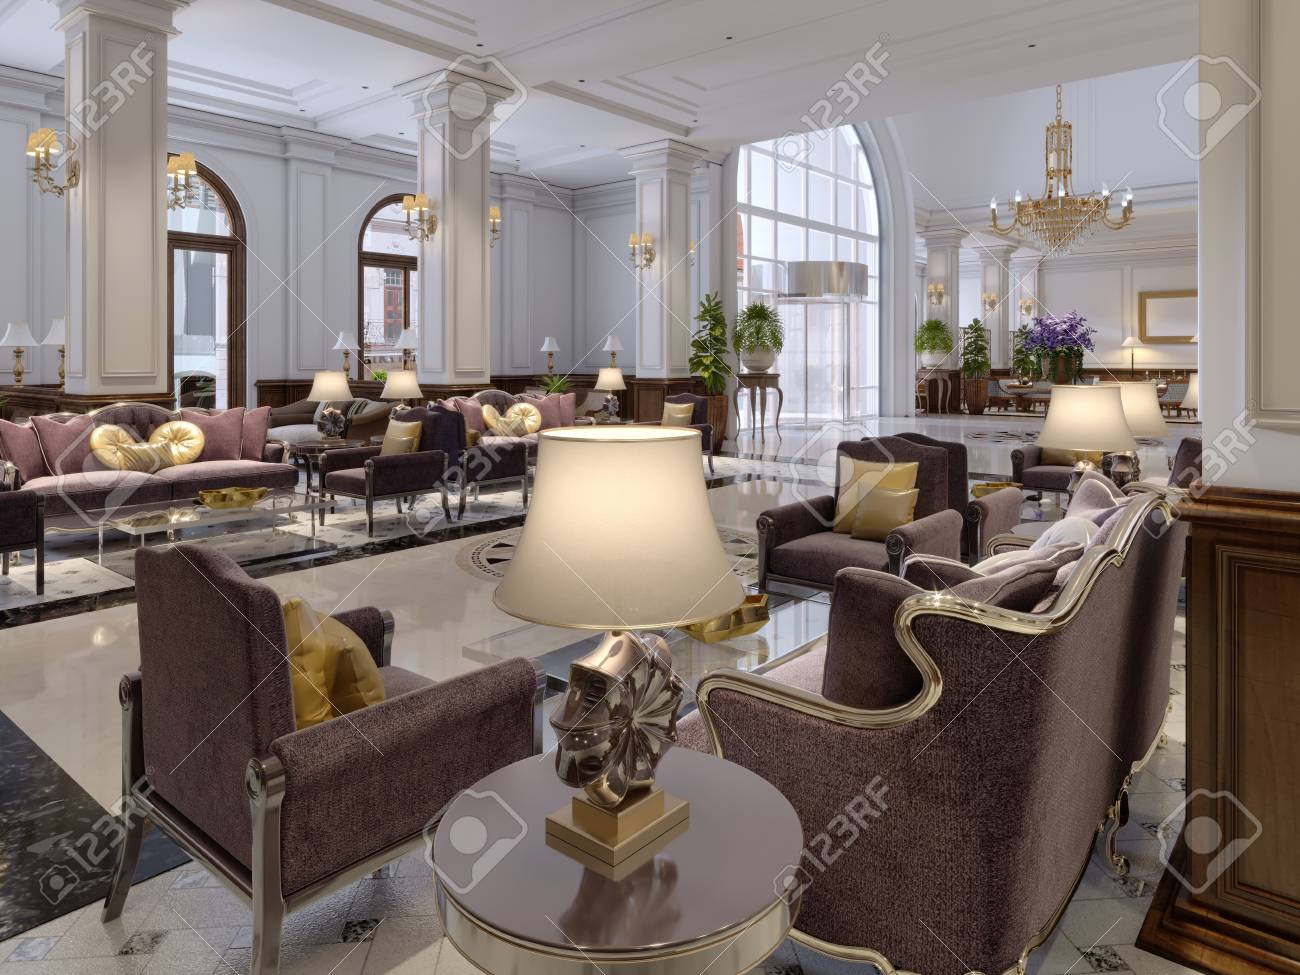 Hotel lobby in classic style with luxurious art deco furniture..